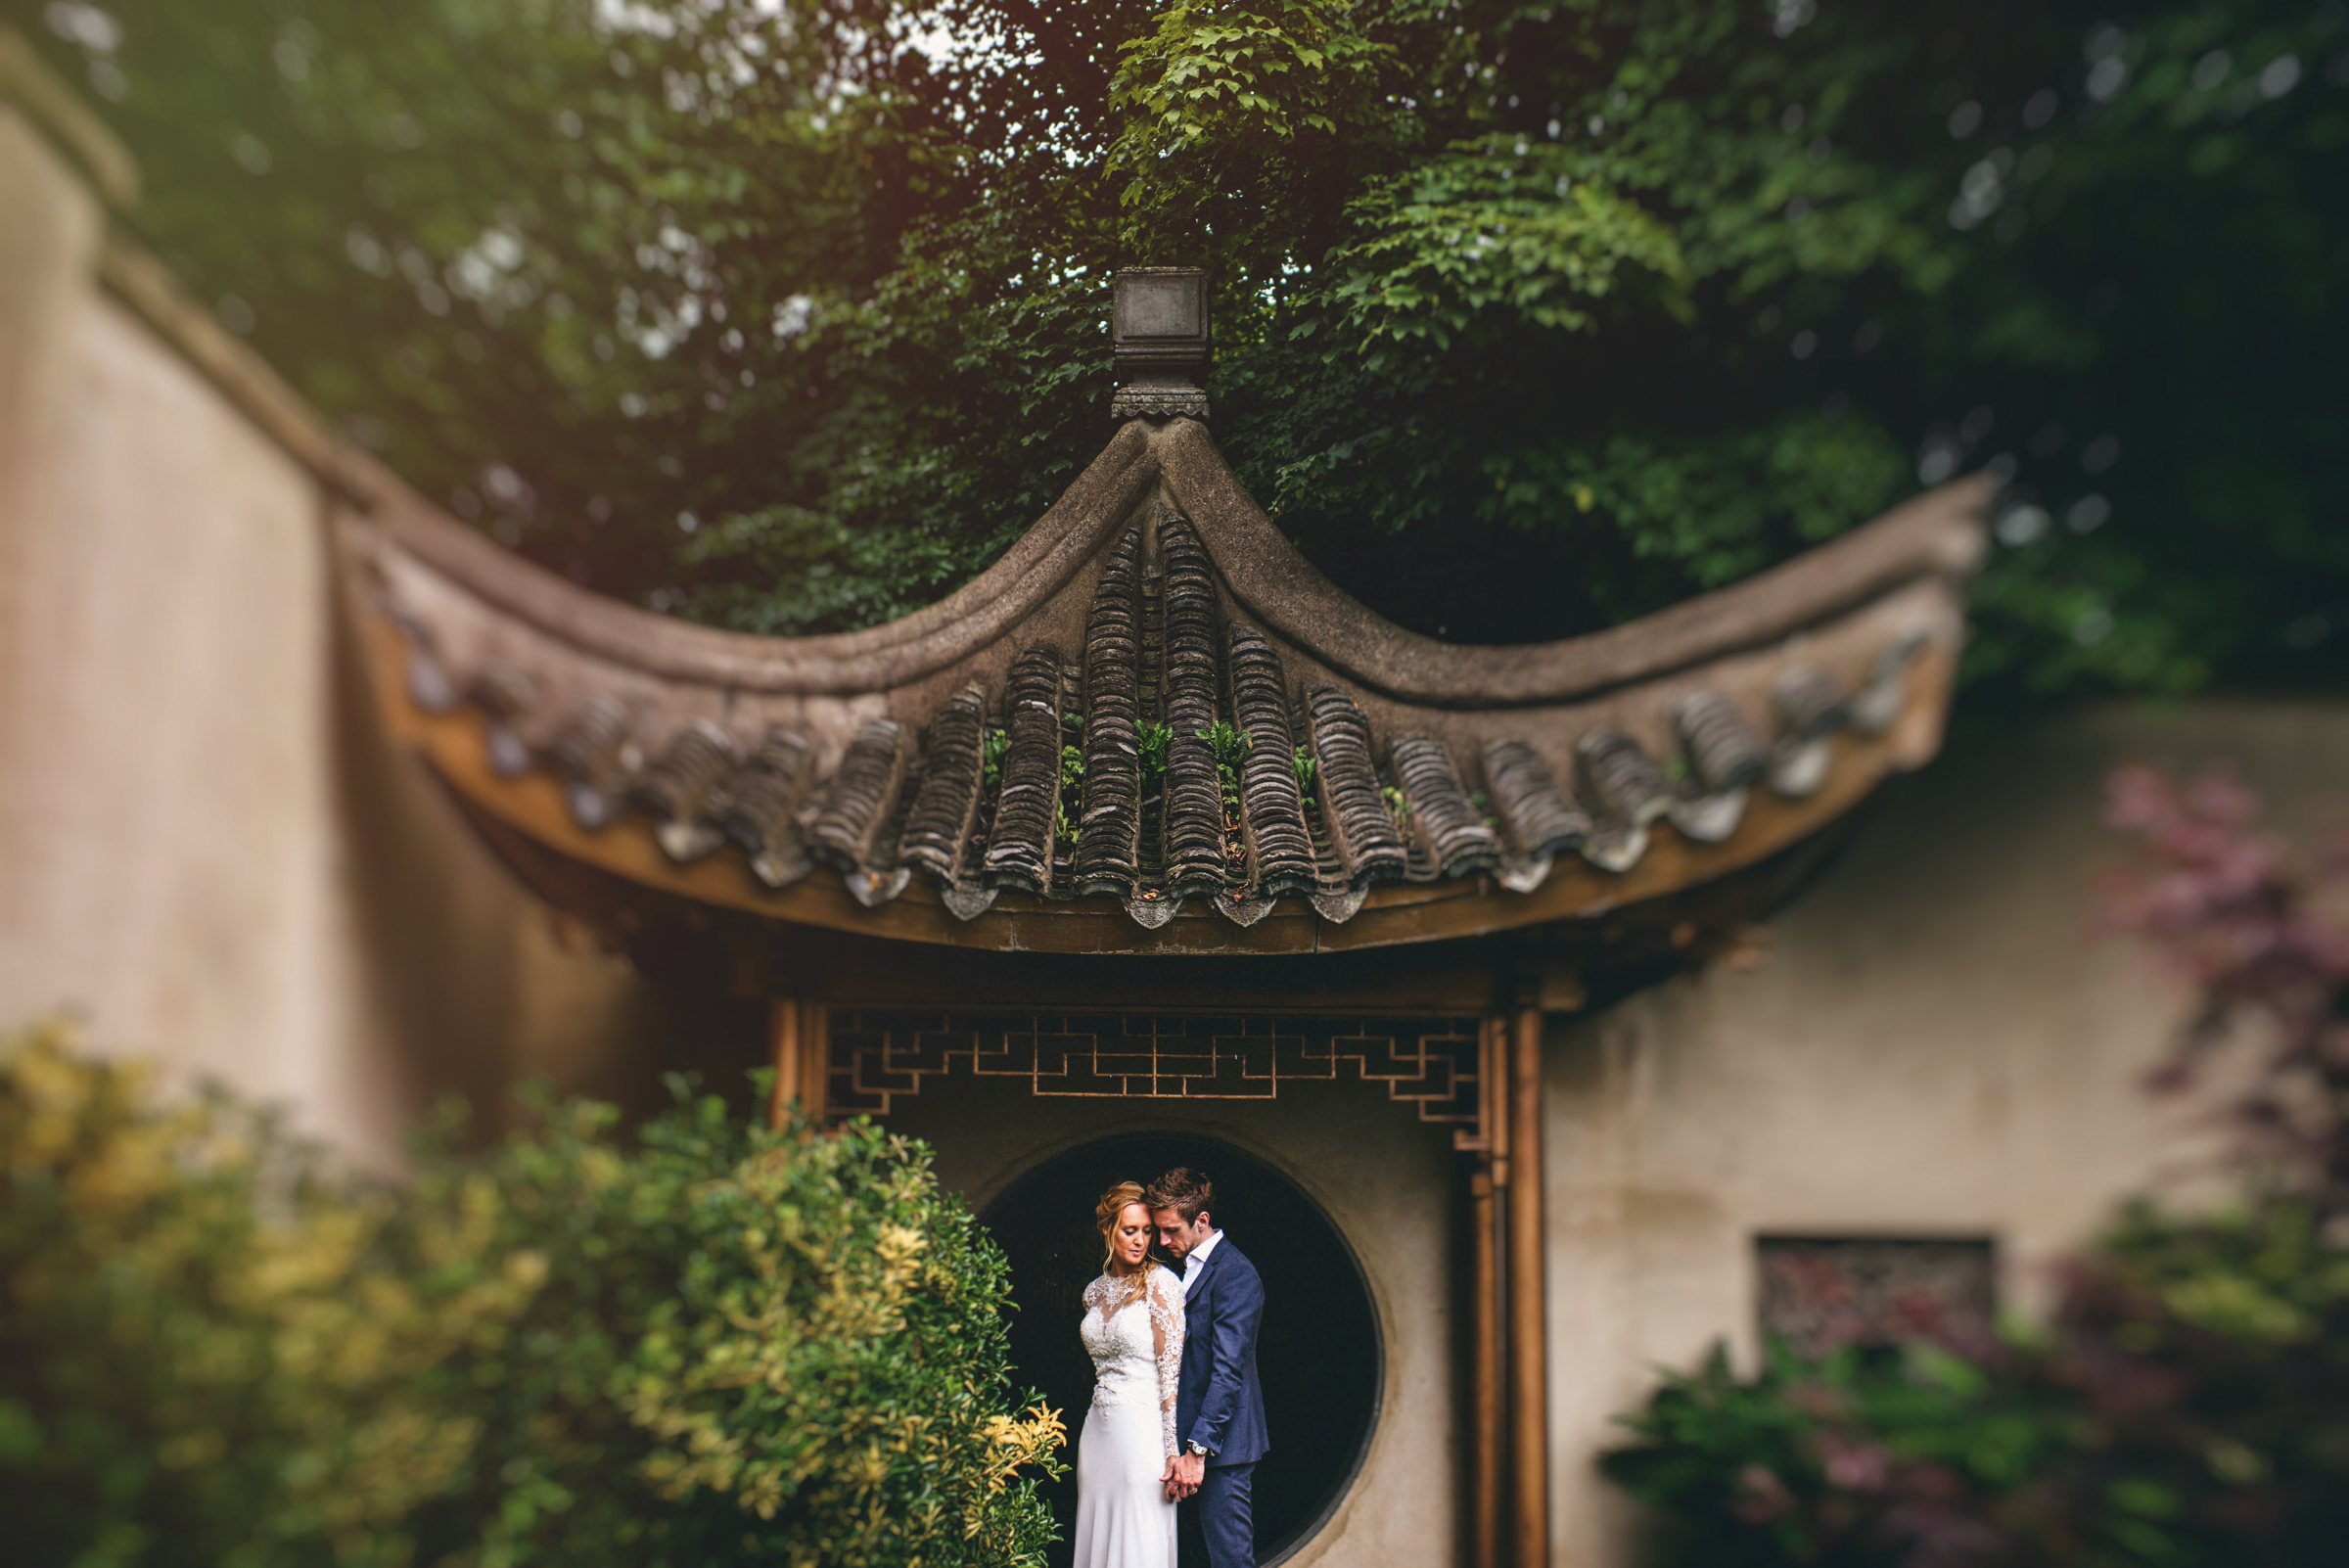 Couple against chinese garden architecture - photo by MIKI Studios